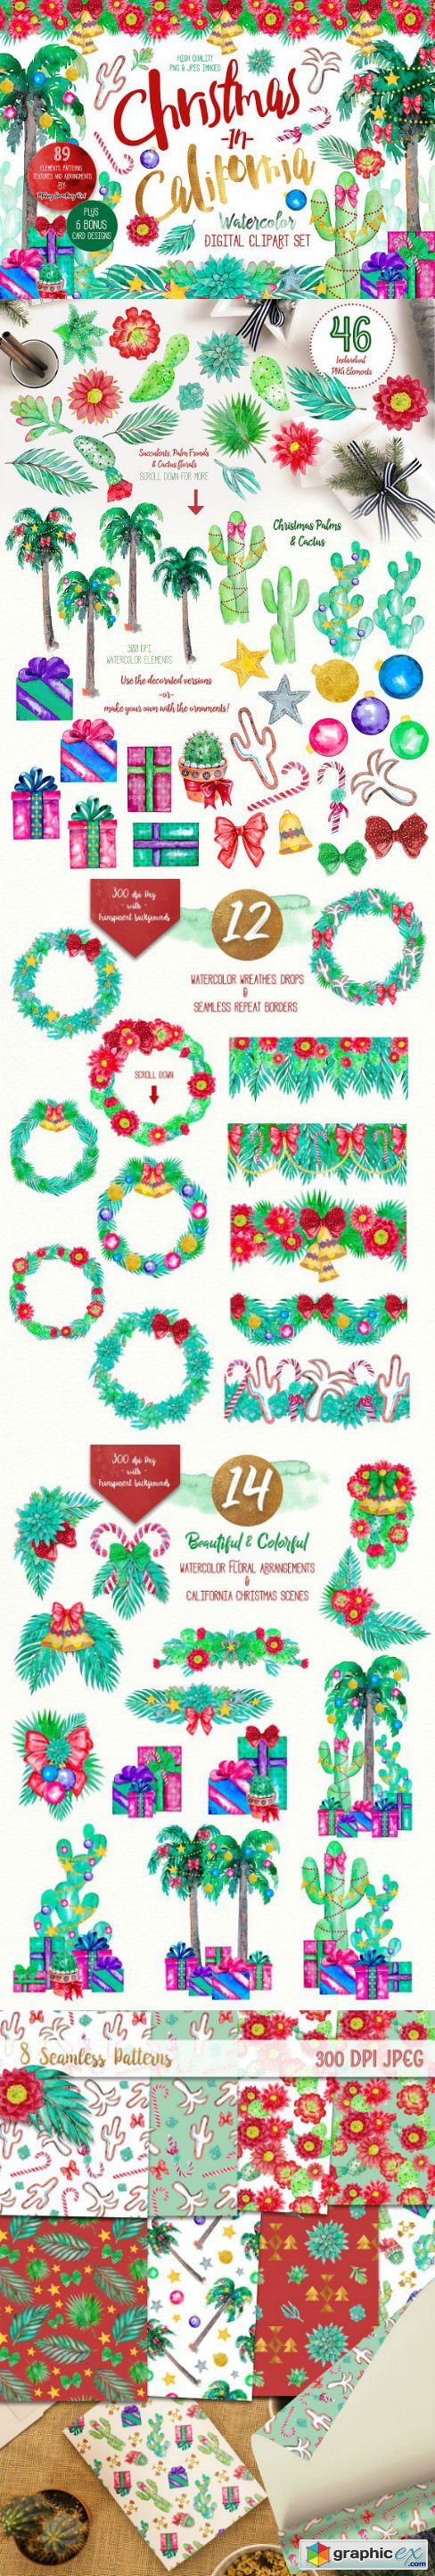 Christmas in California clipart set